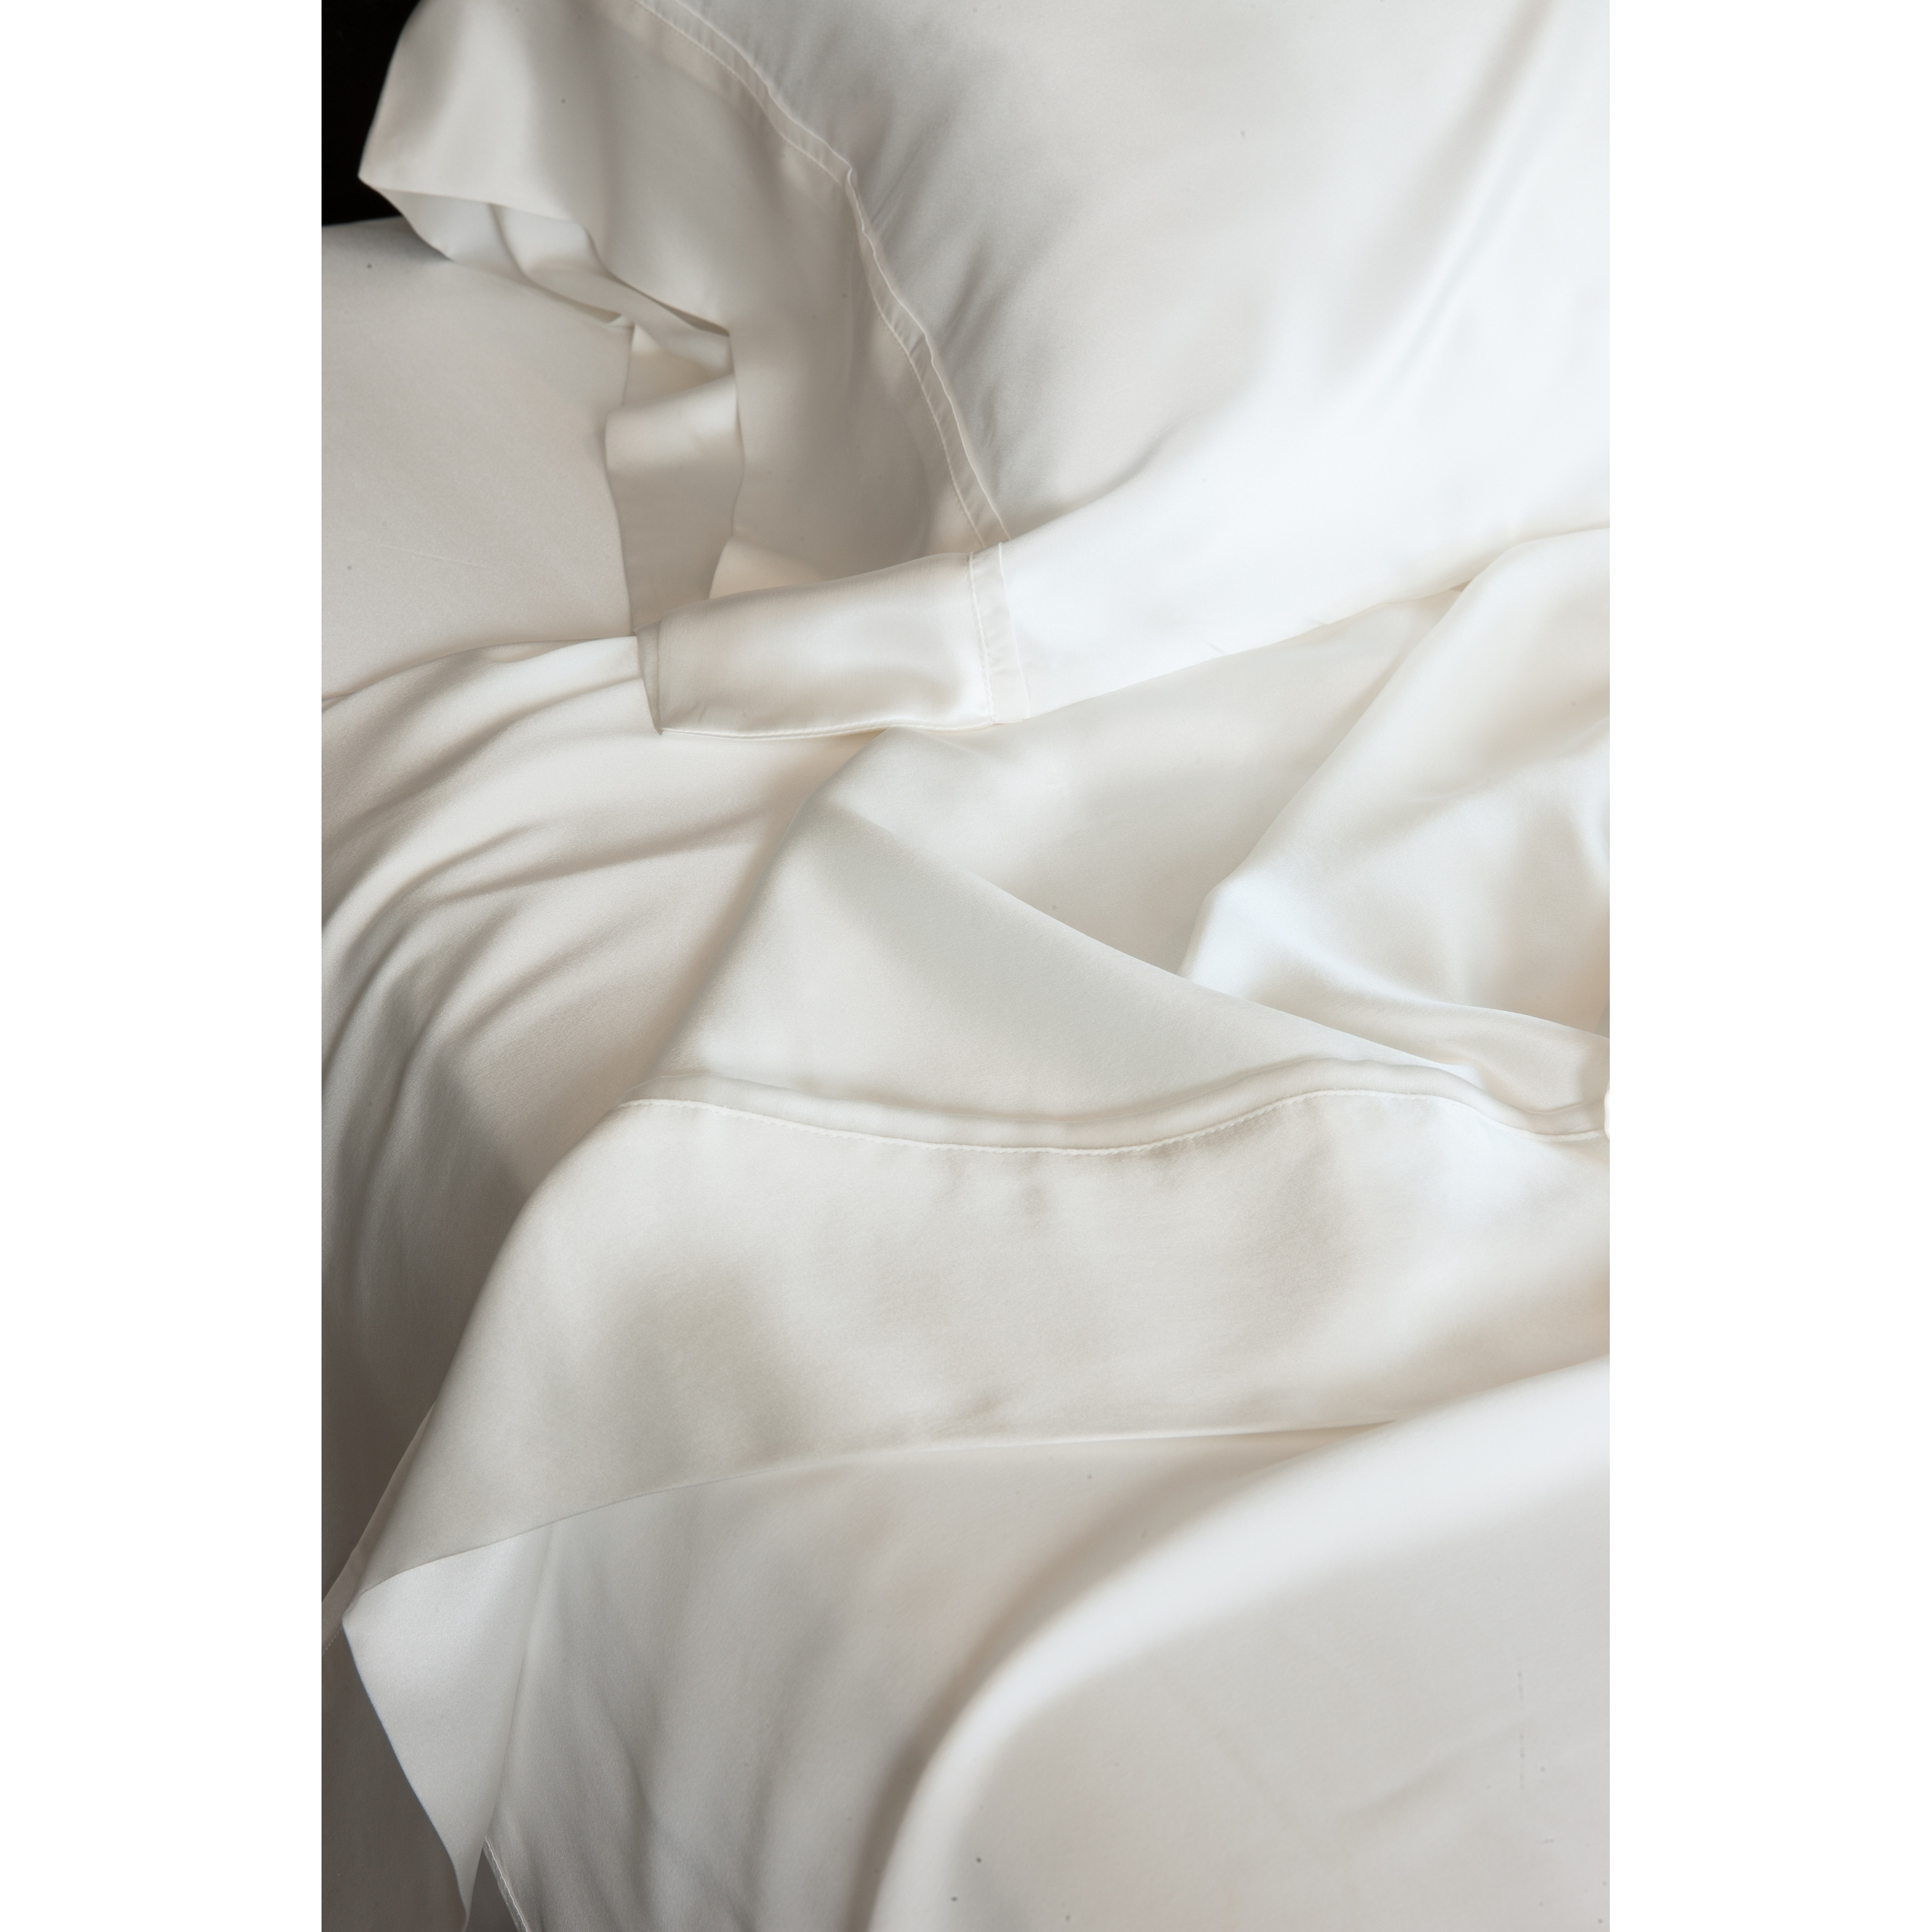 comforter today silk hypoallergenic filled shipping mulberry product cotton white haven overstock luxe bath free bedding grand